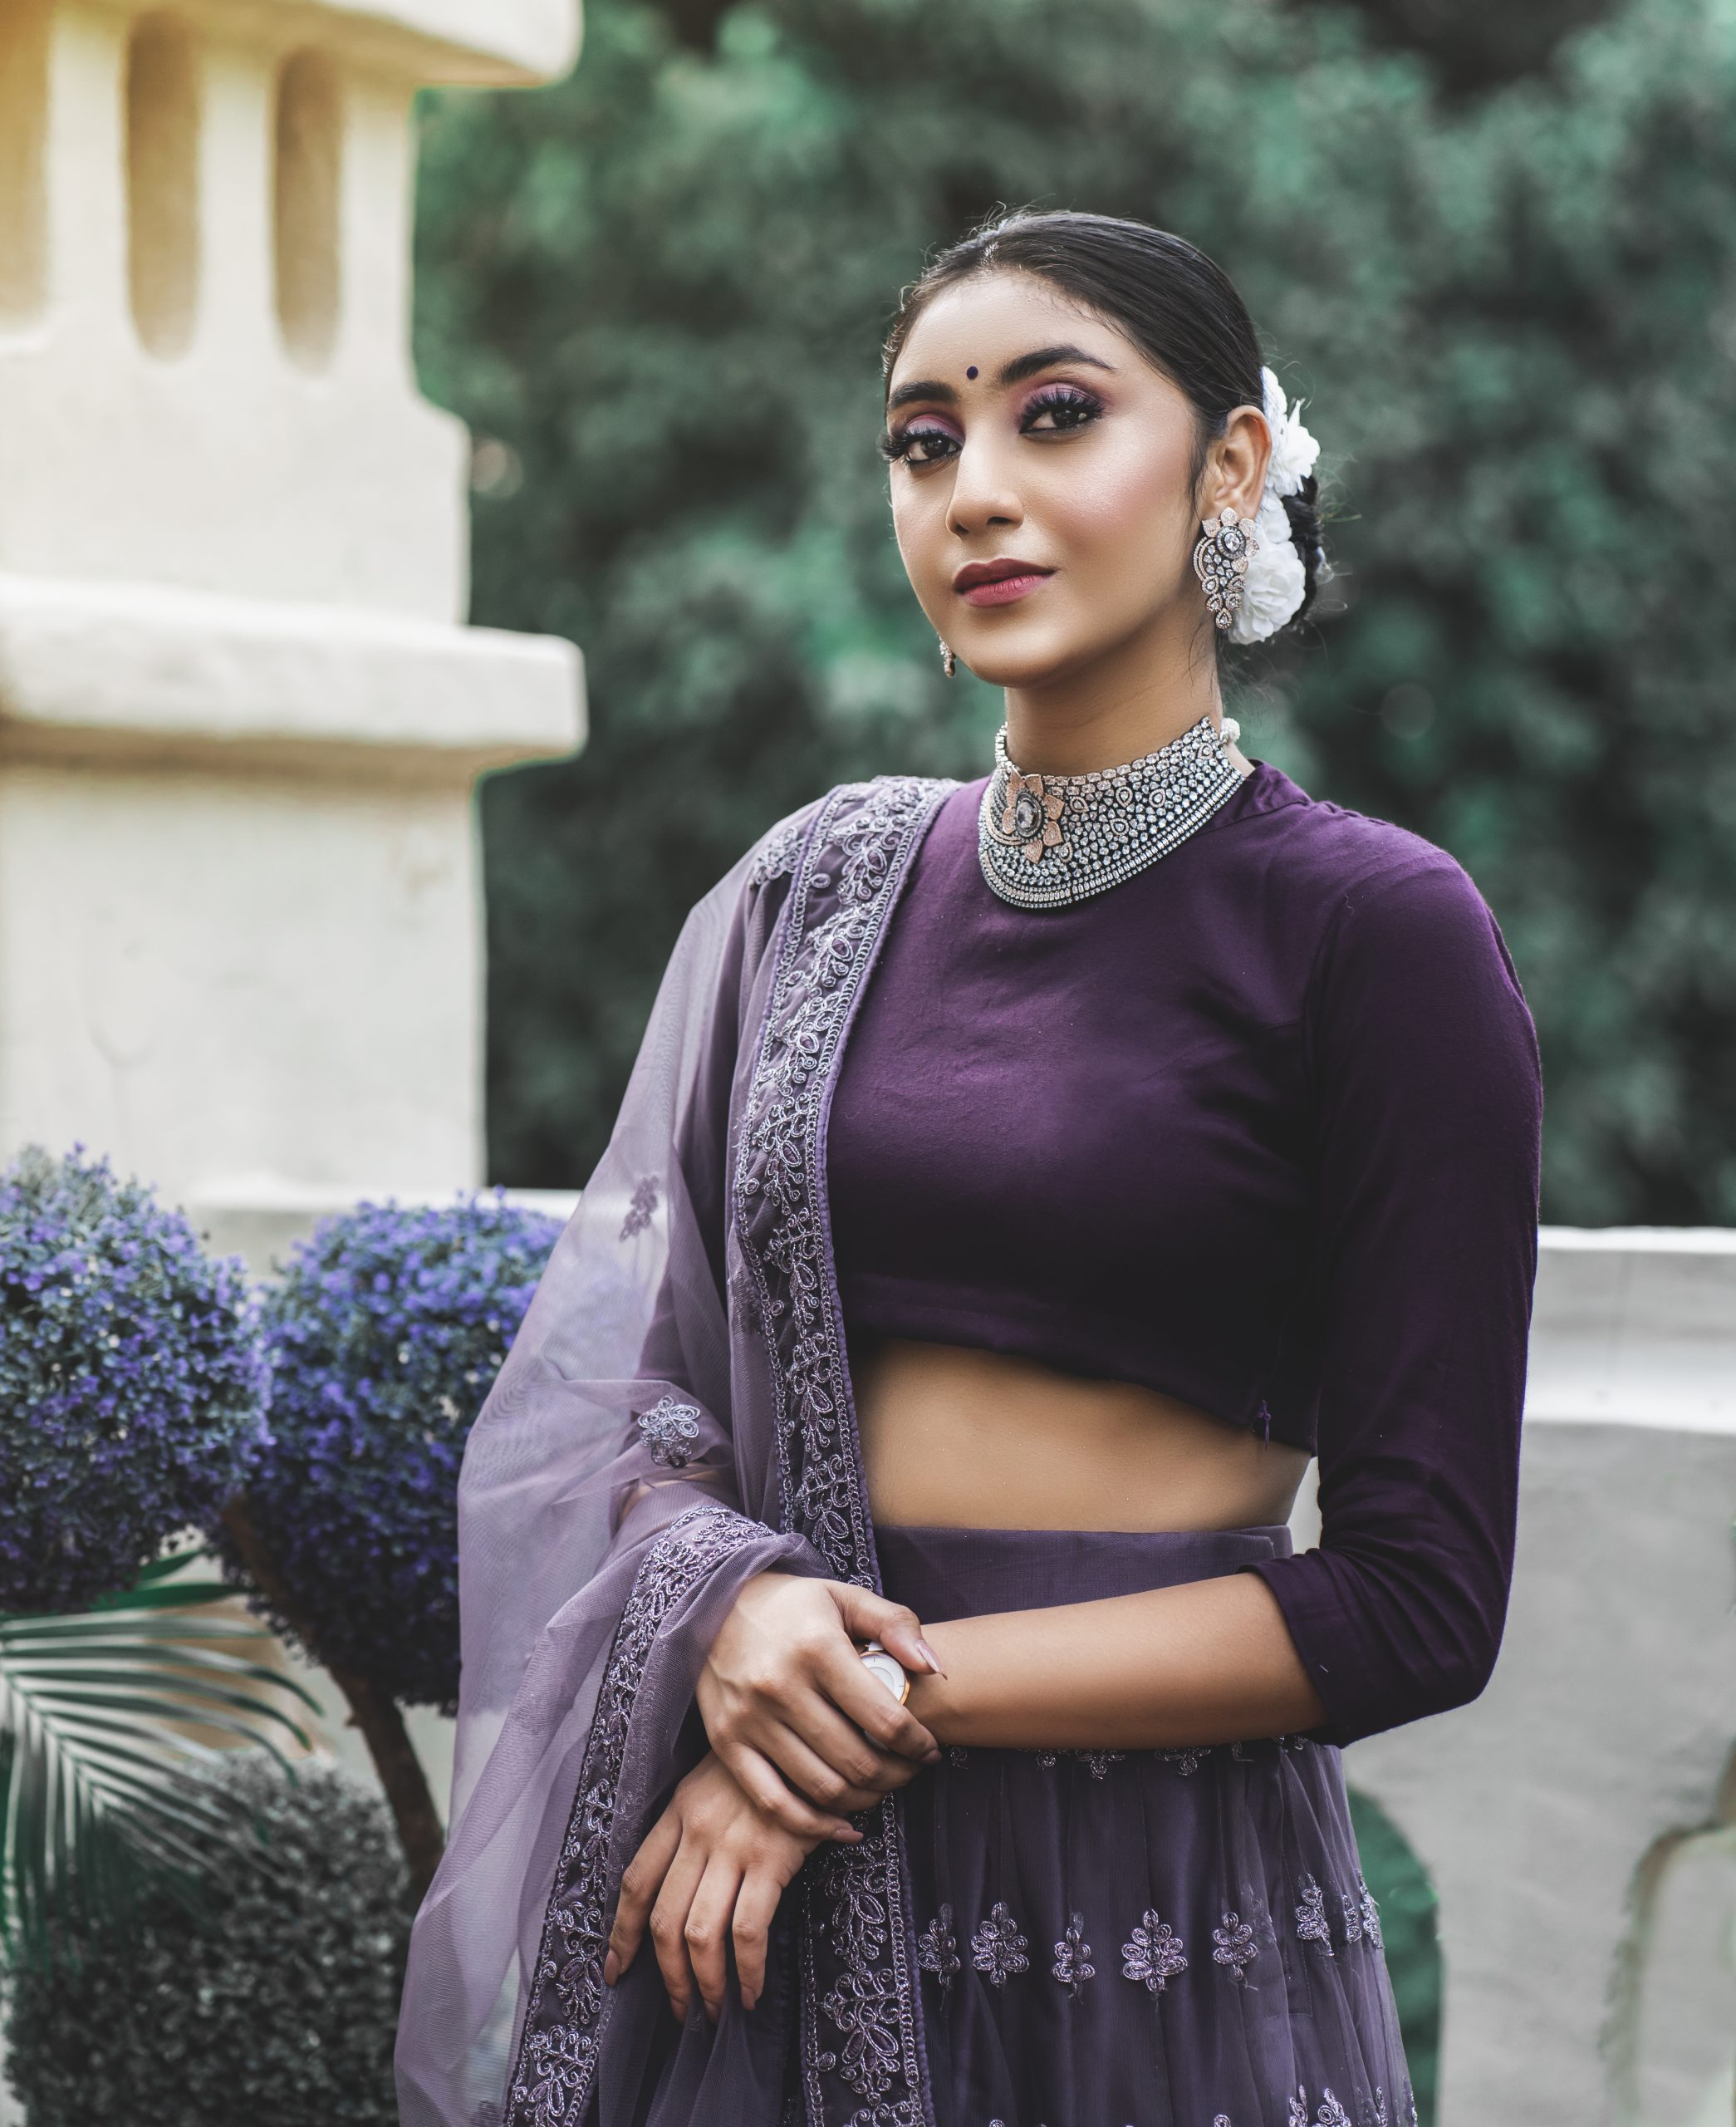 Model in Indian Traditional Wear